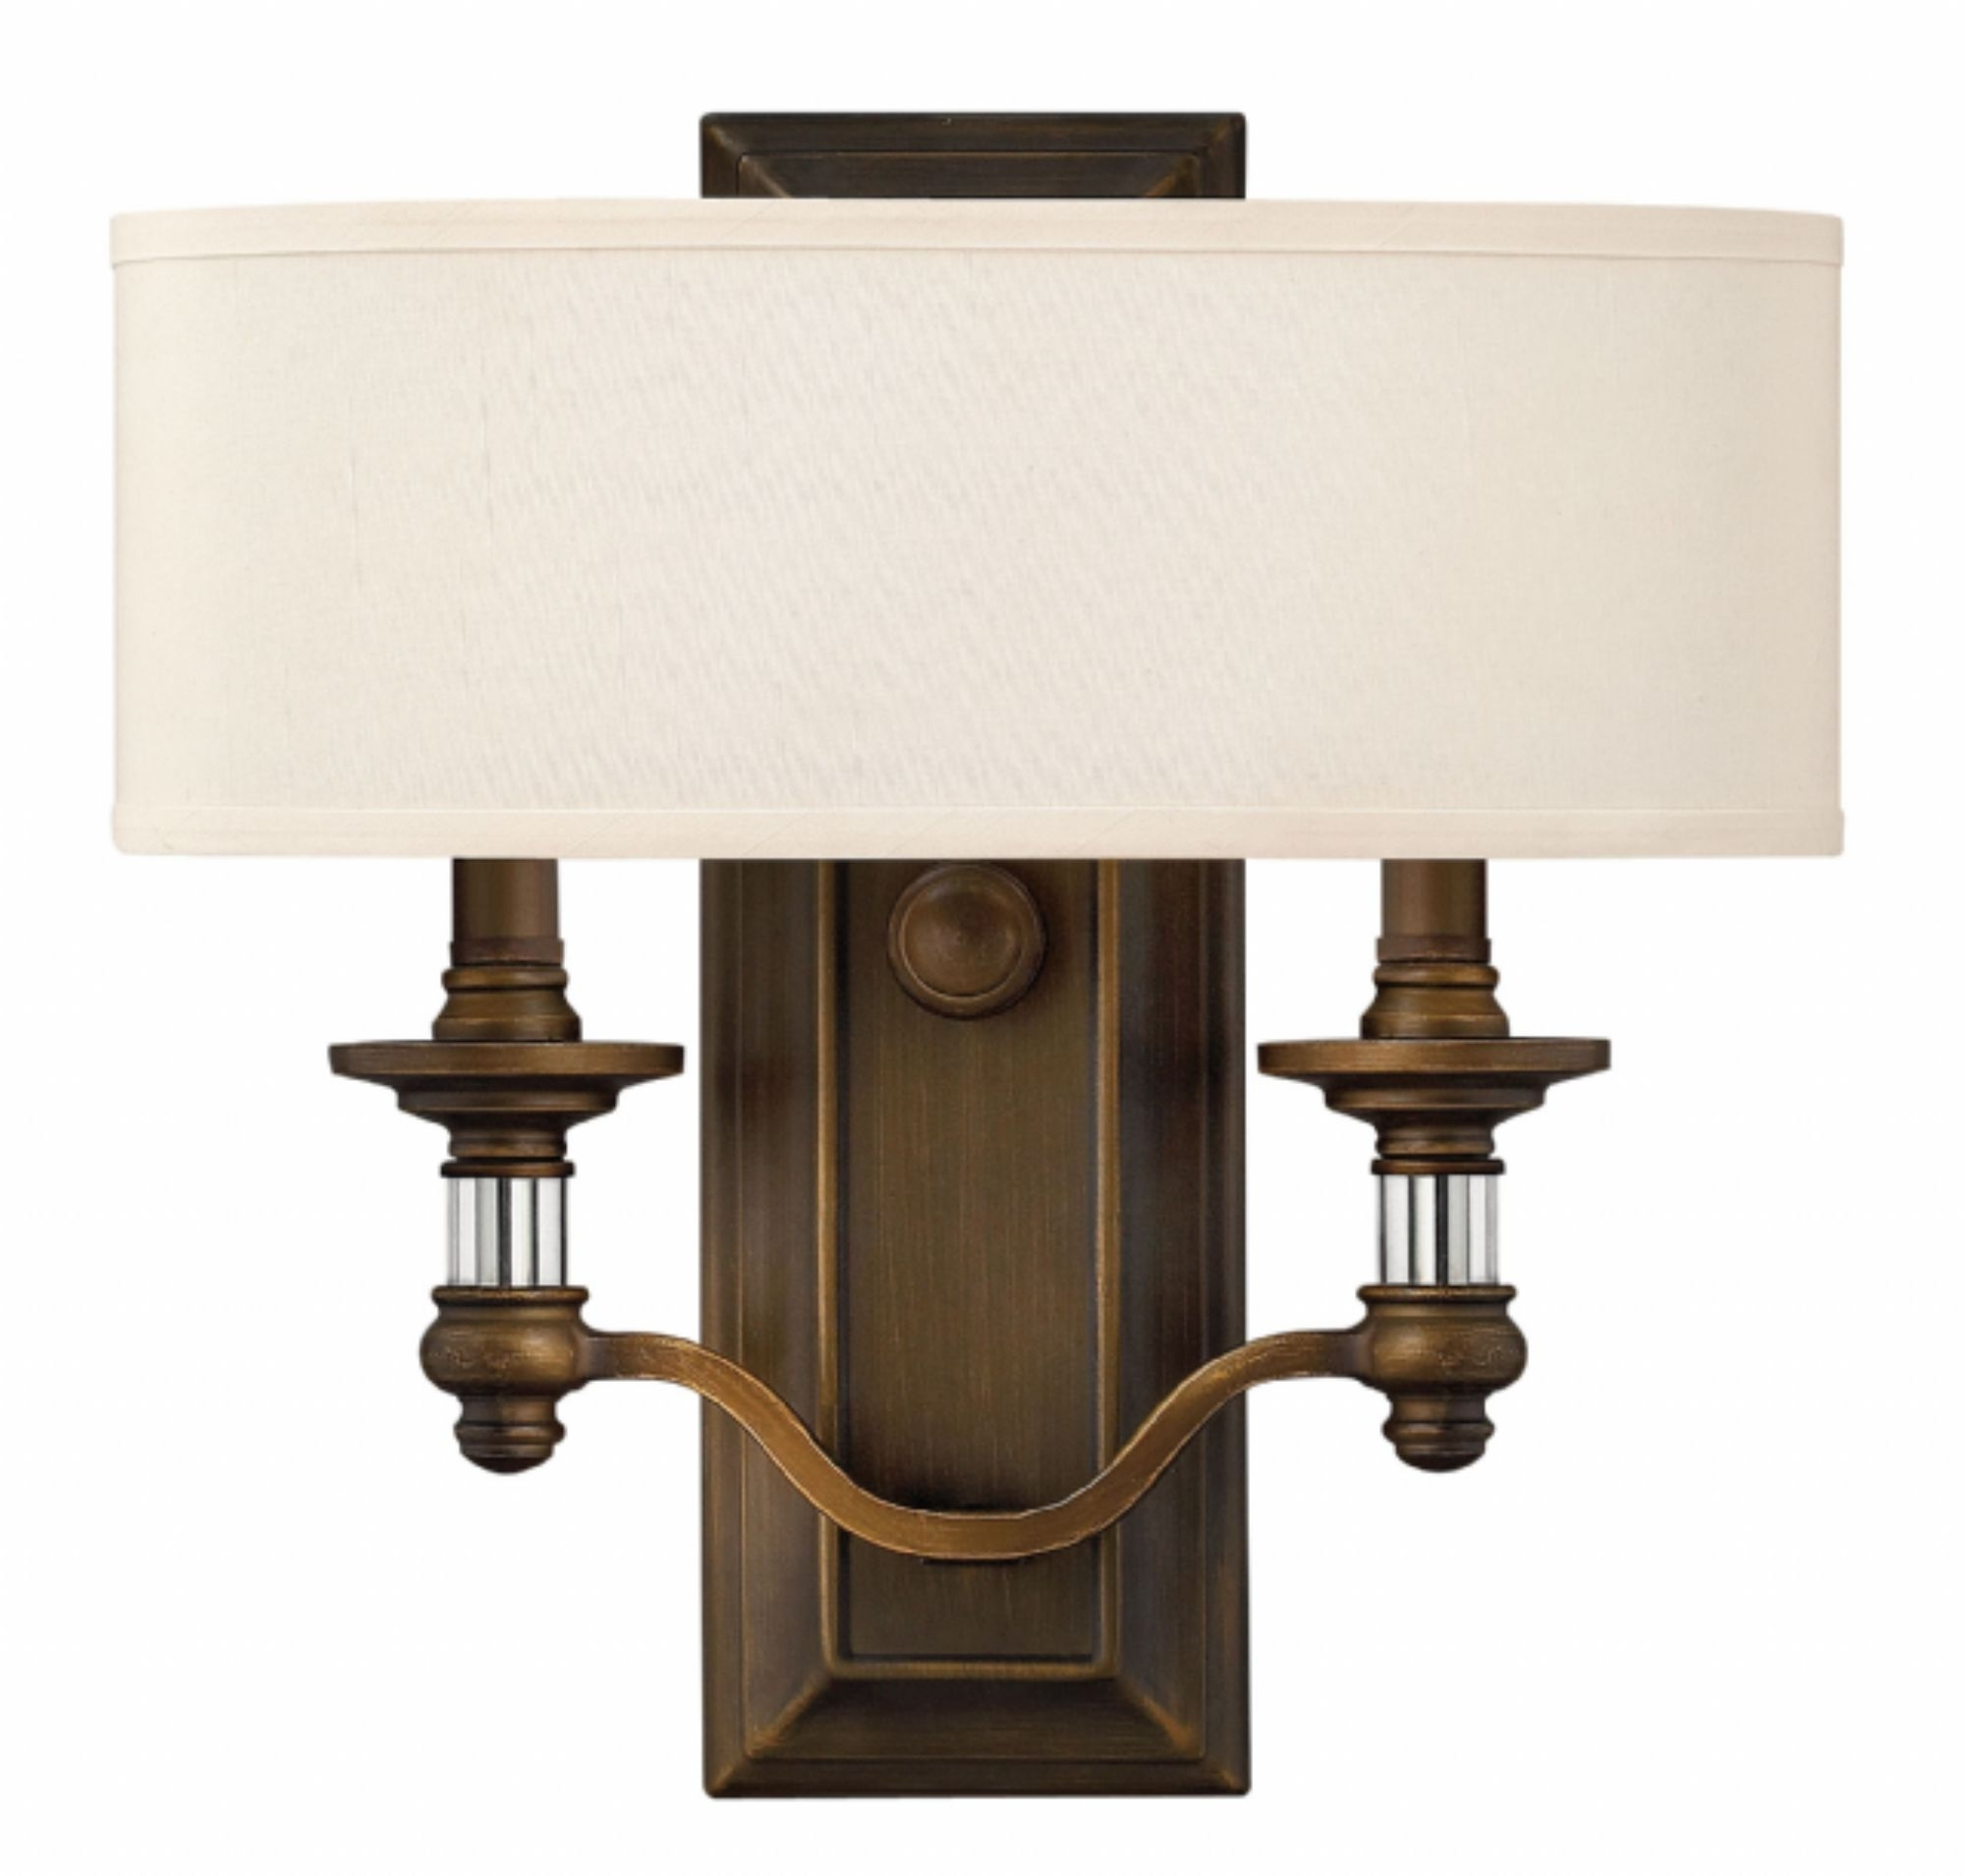 English Bronze Sussex > Interior Wall Mount Throughout Double Wall Mount Hinkley Lighting (#3 of 15)